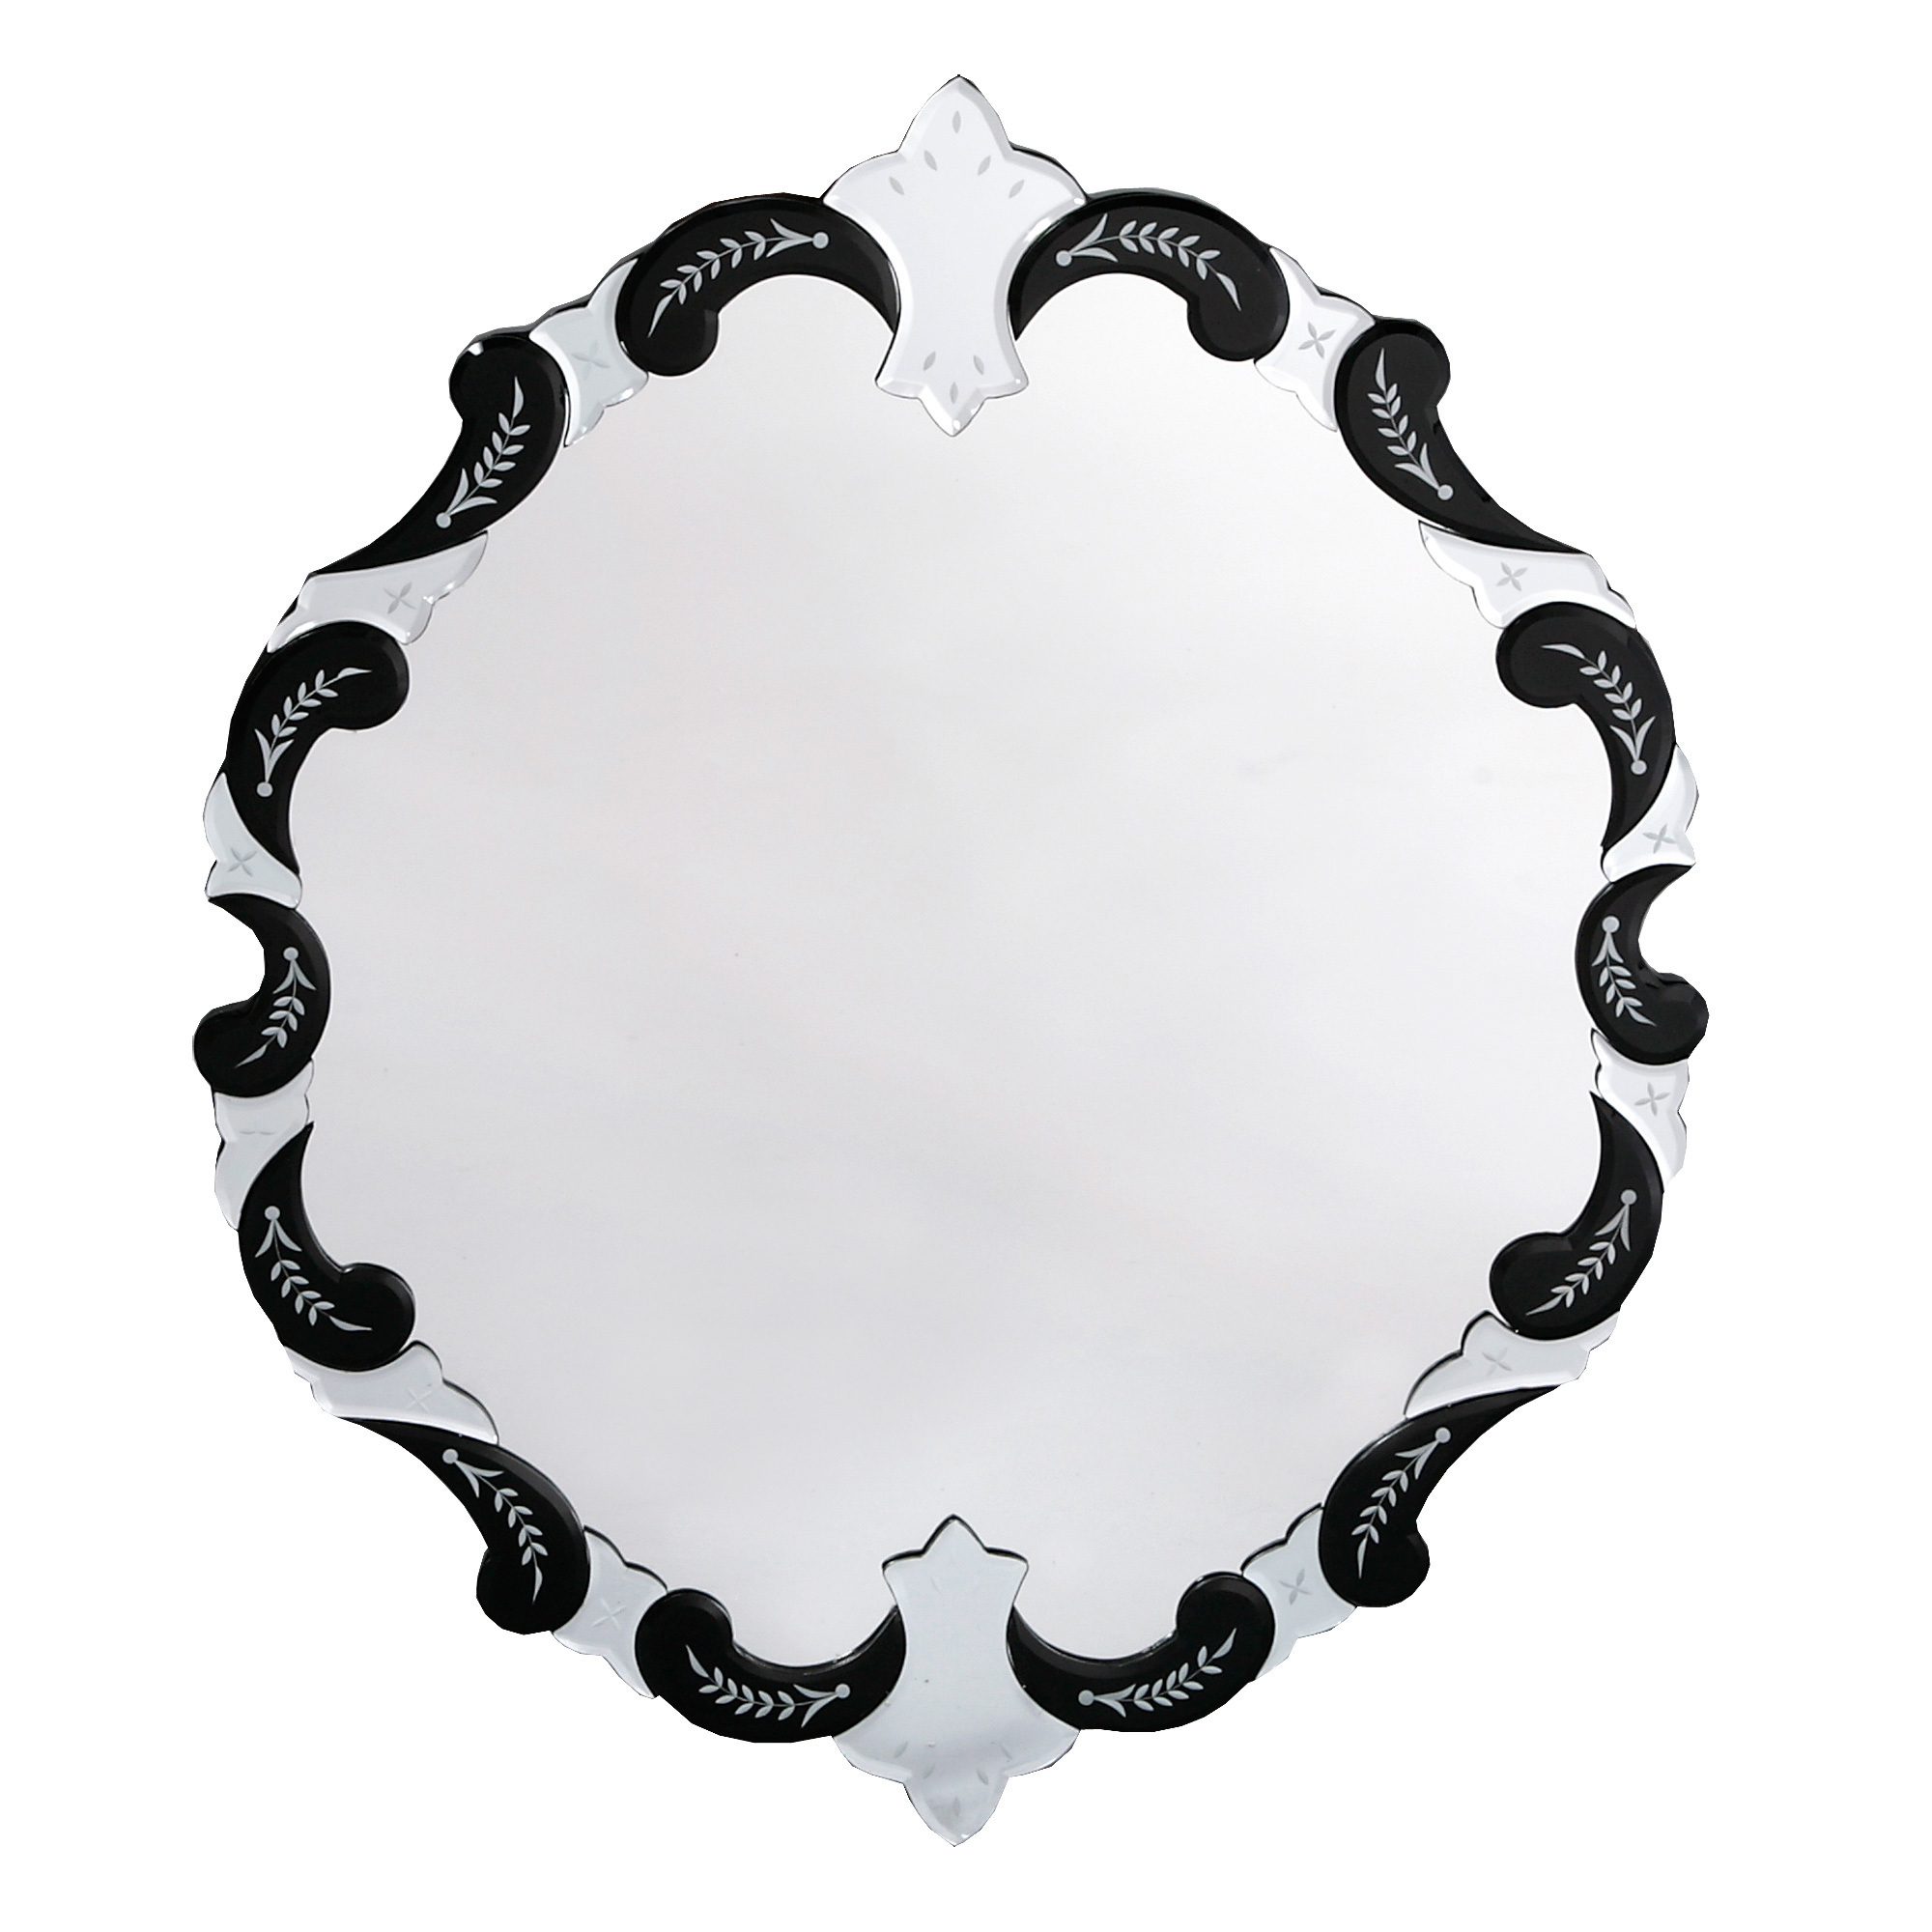 Venetian Etched Wall Mirror - Black